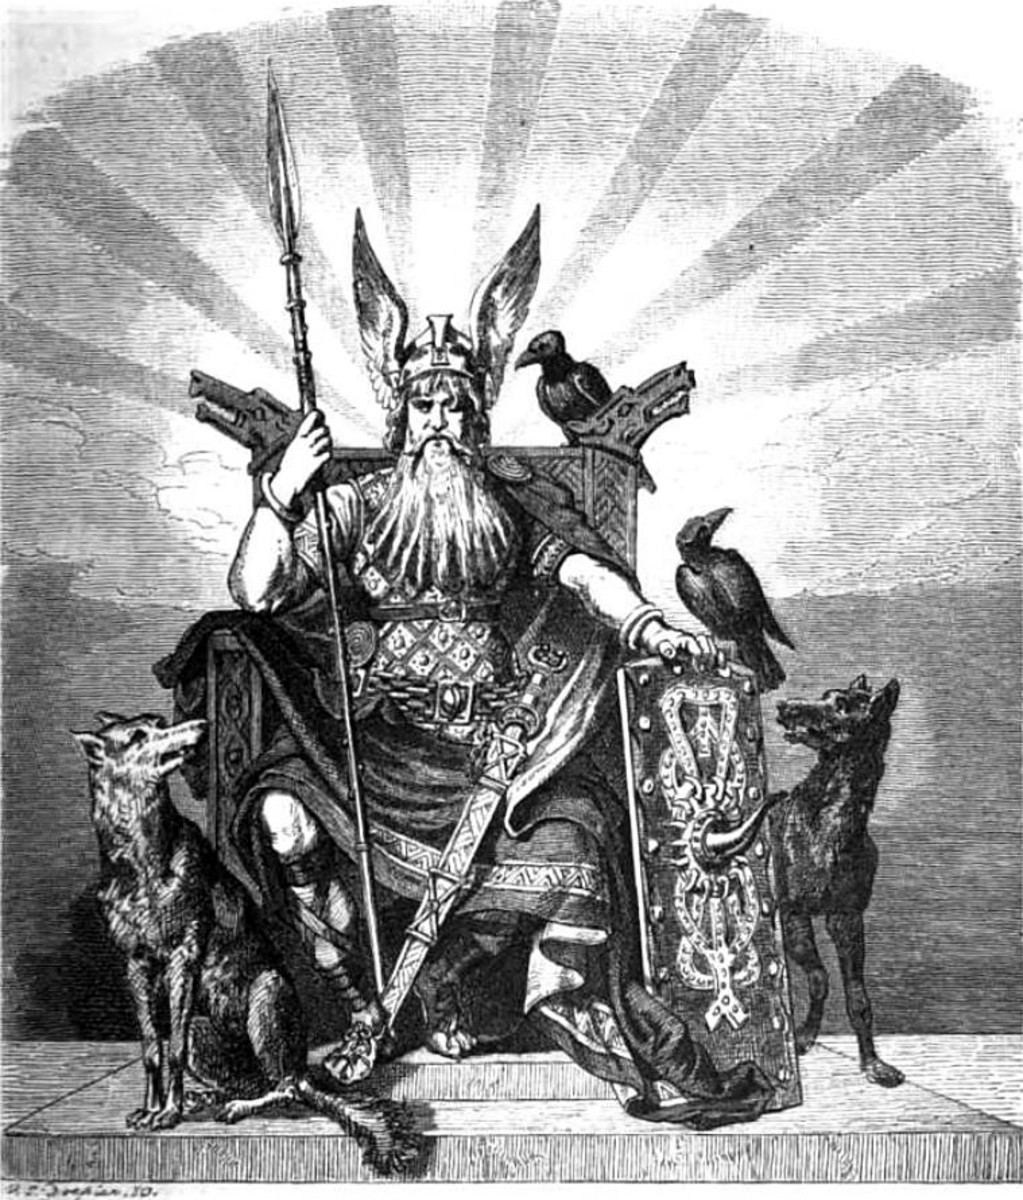 Odin in his High Seat (Similar to a Volva's High Seat).